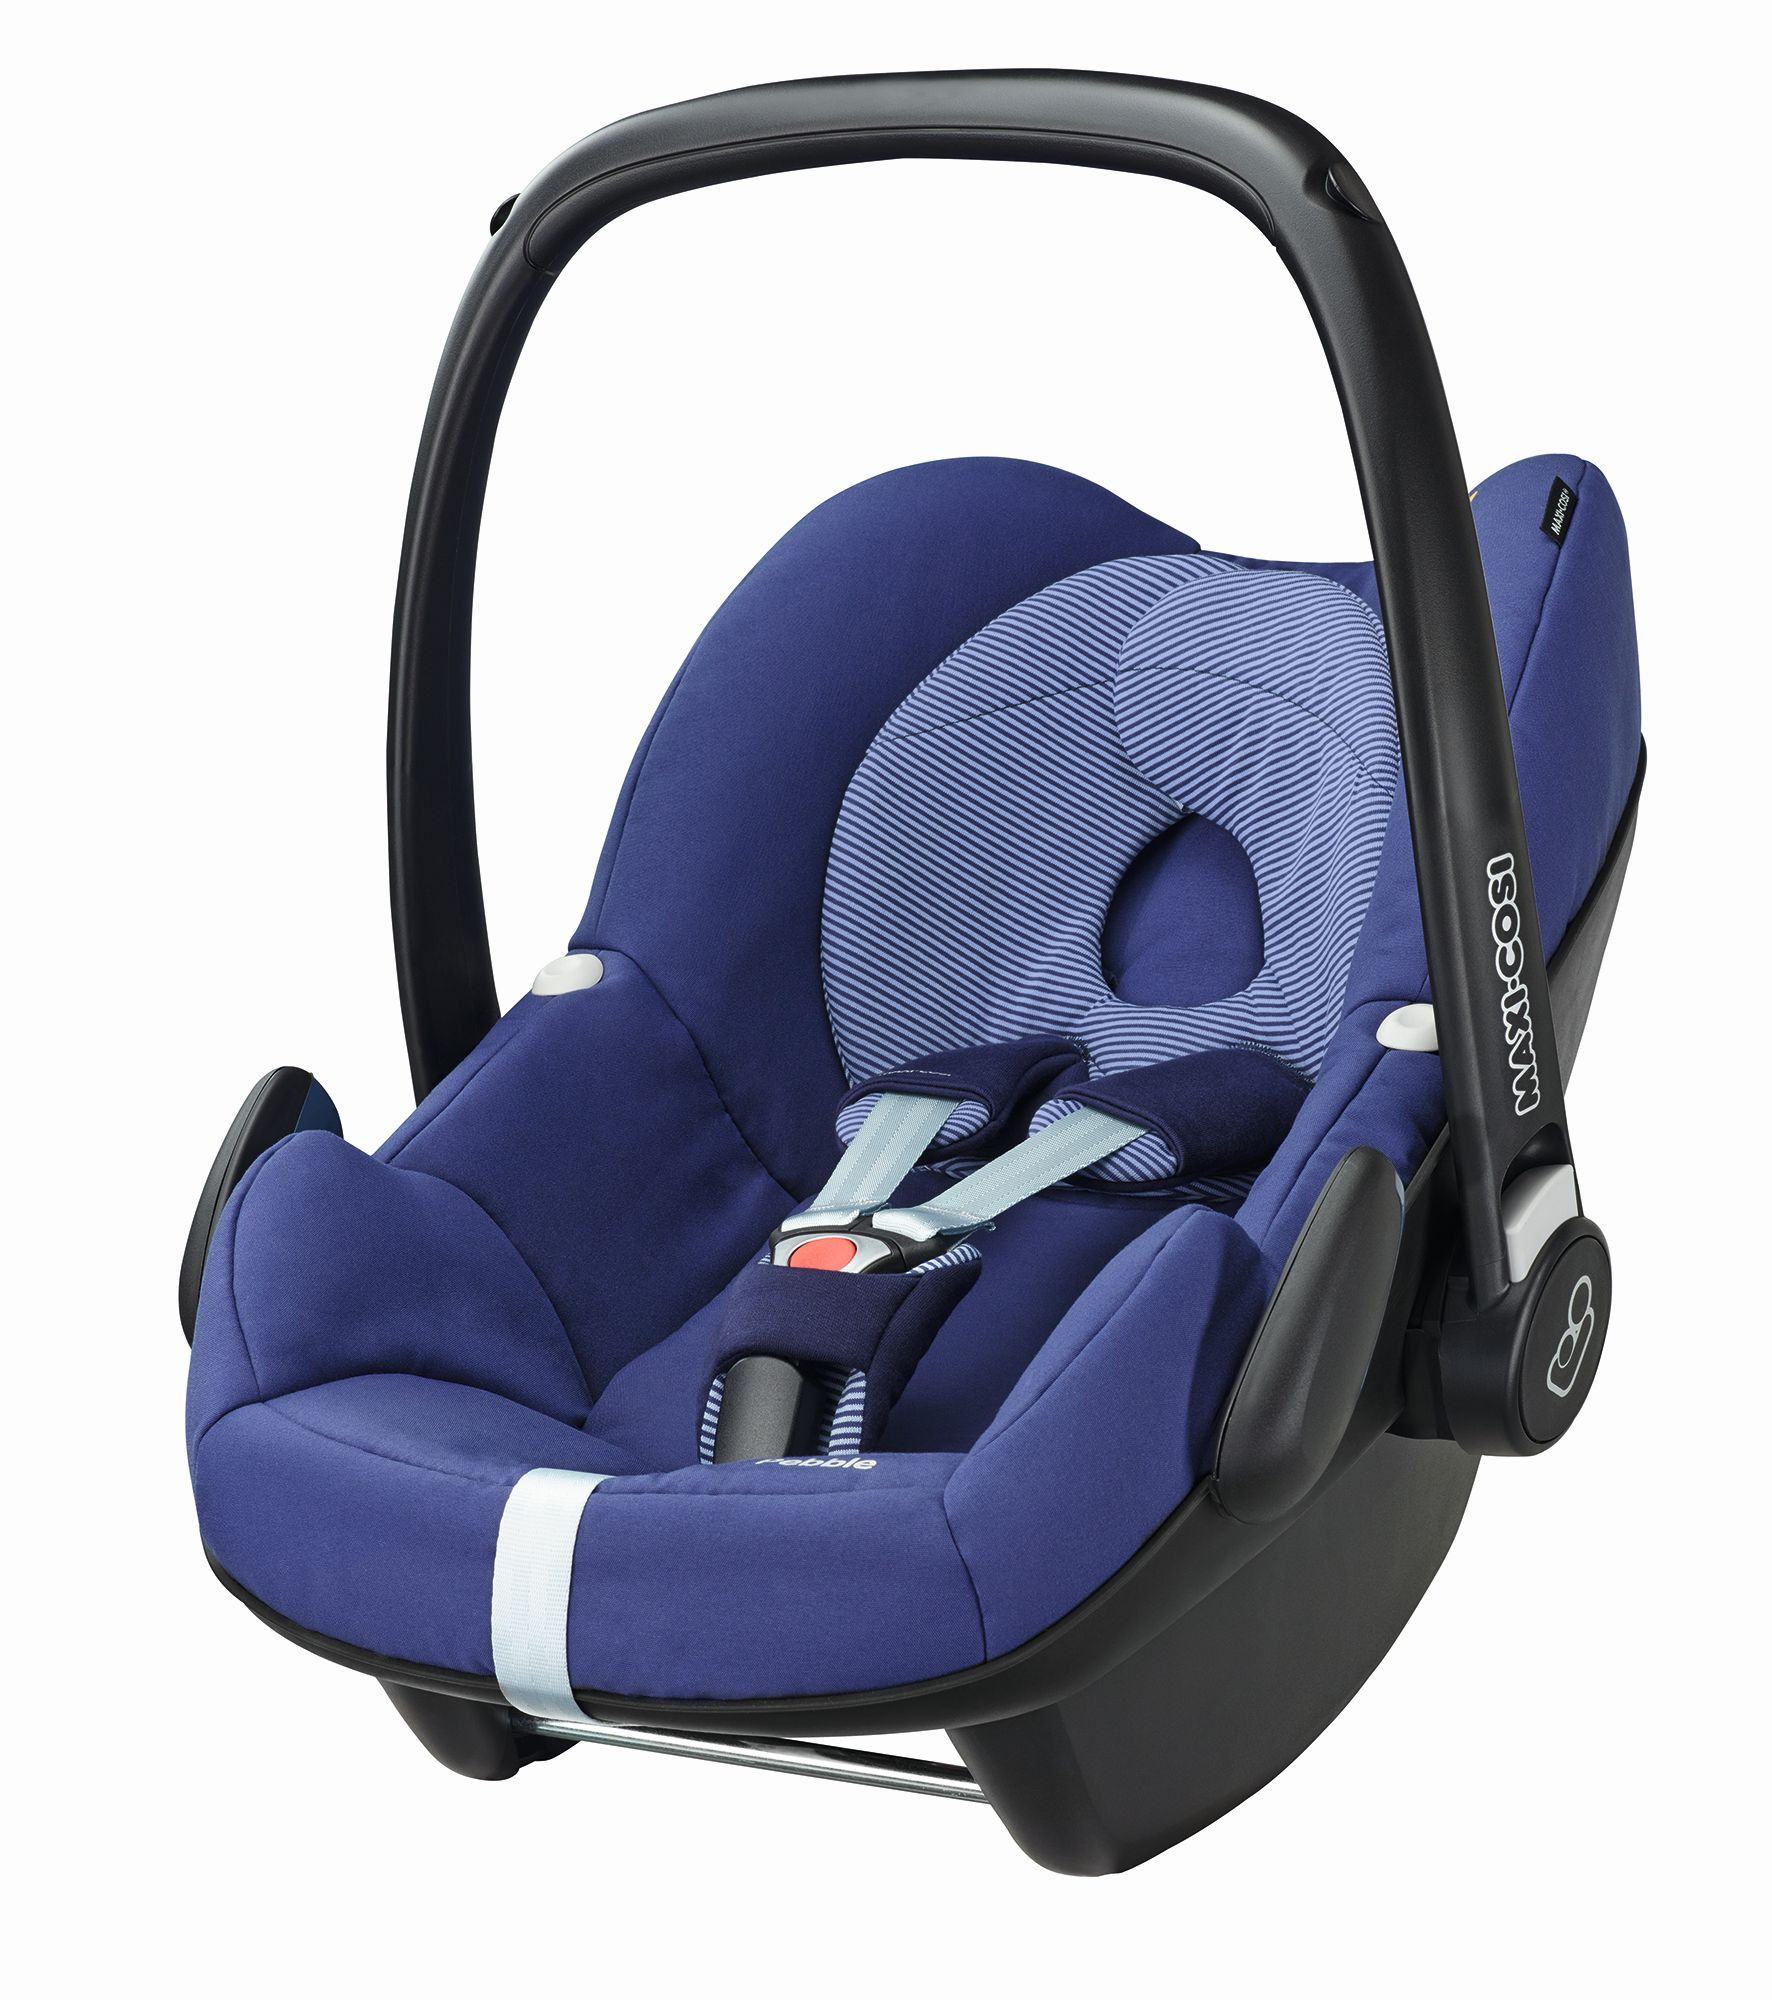 Maxi Cosi Baby : maxi cosi infant carrier pebble 2018 river blue buy at ~ A.2002-acura-tl-radio.info Haus und Dekorationen